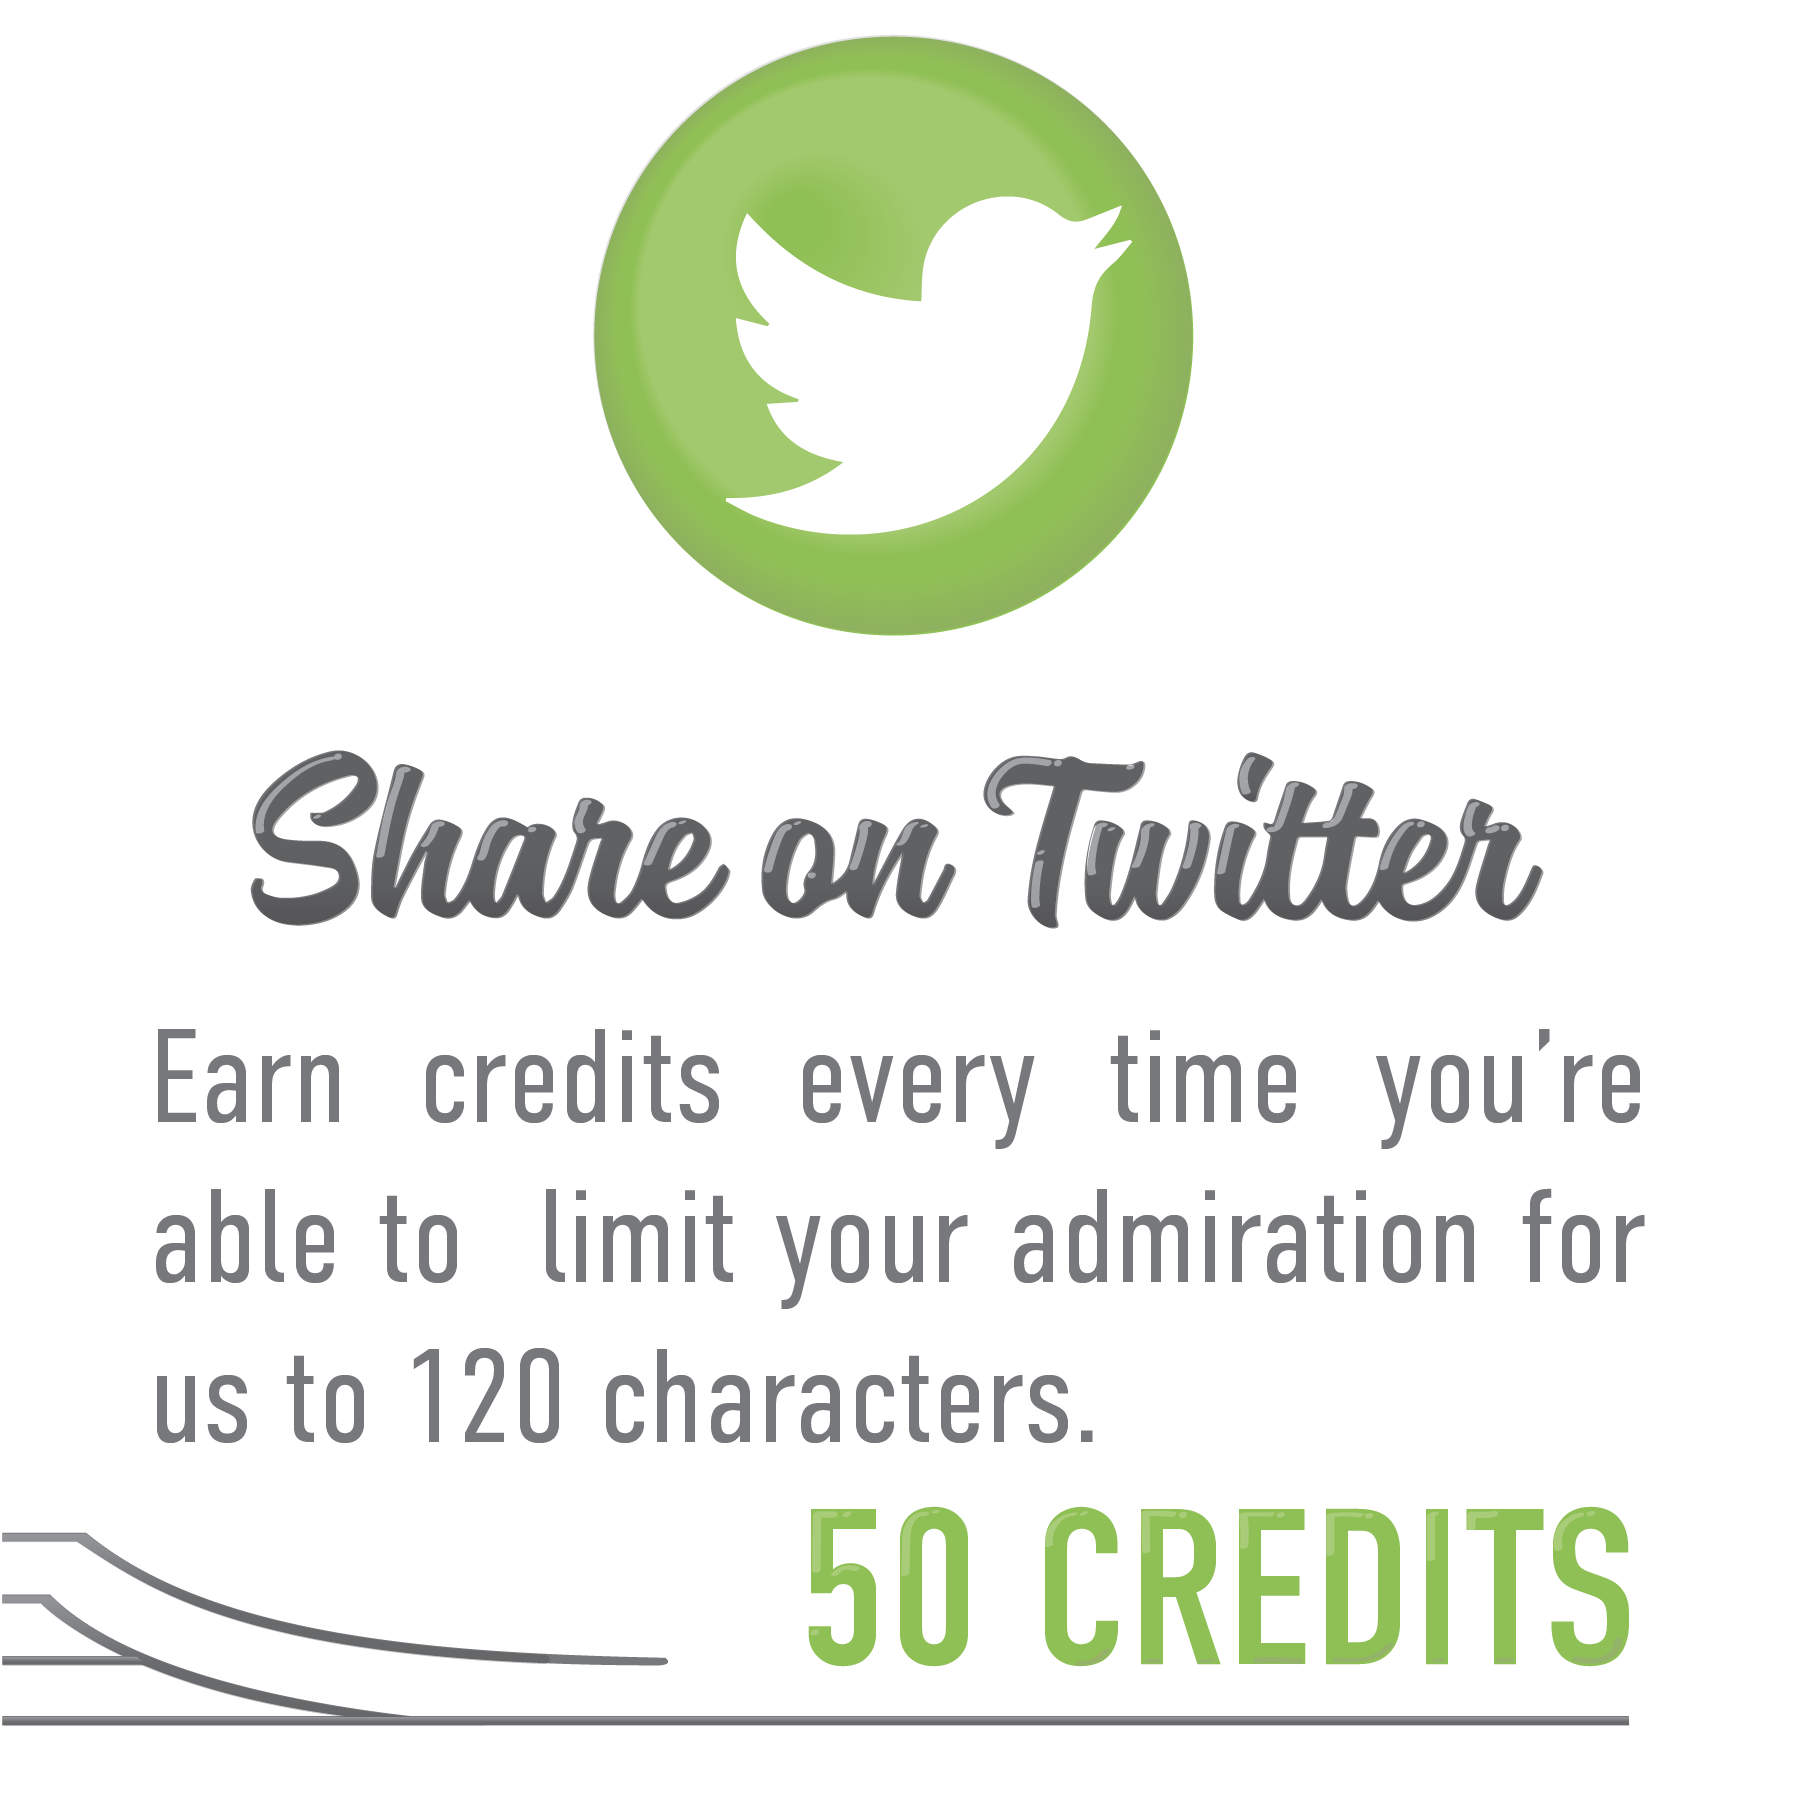 explainer-earn-credits-04.png